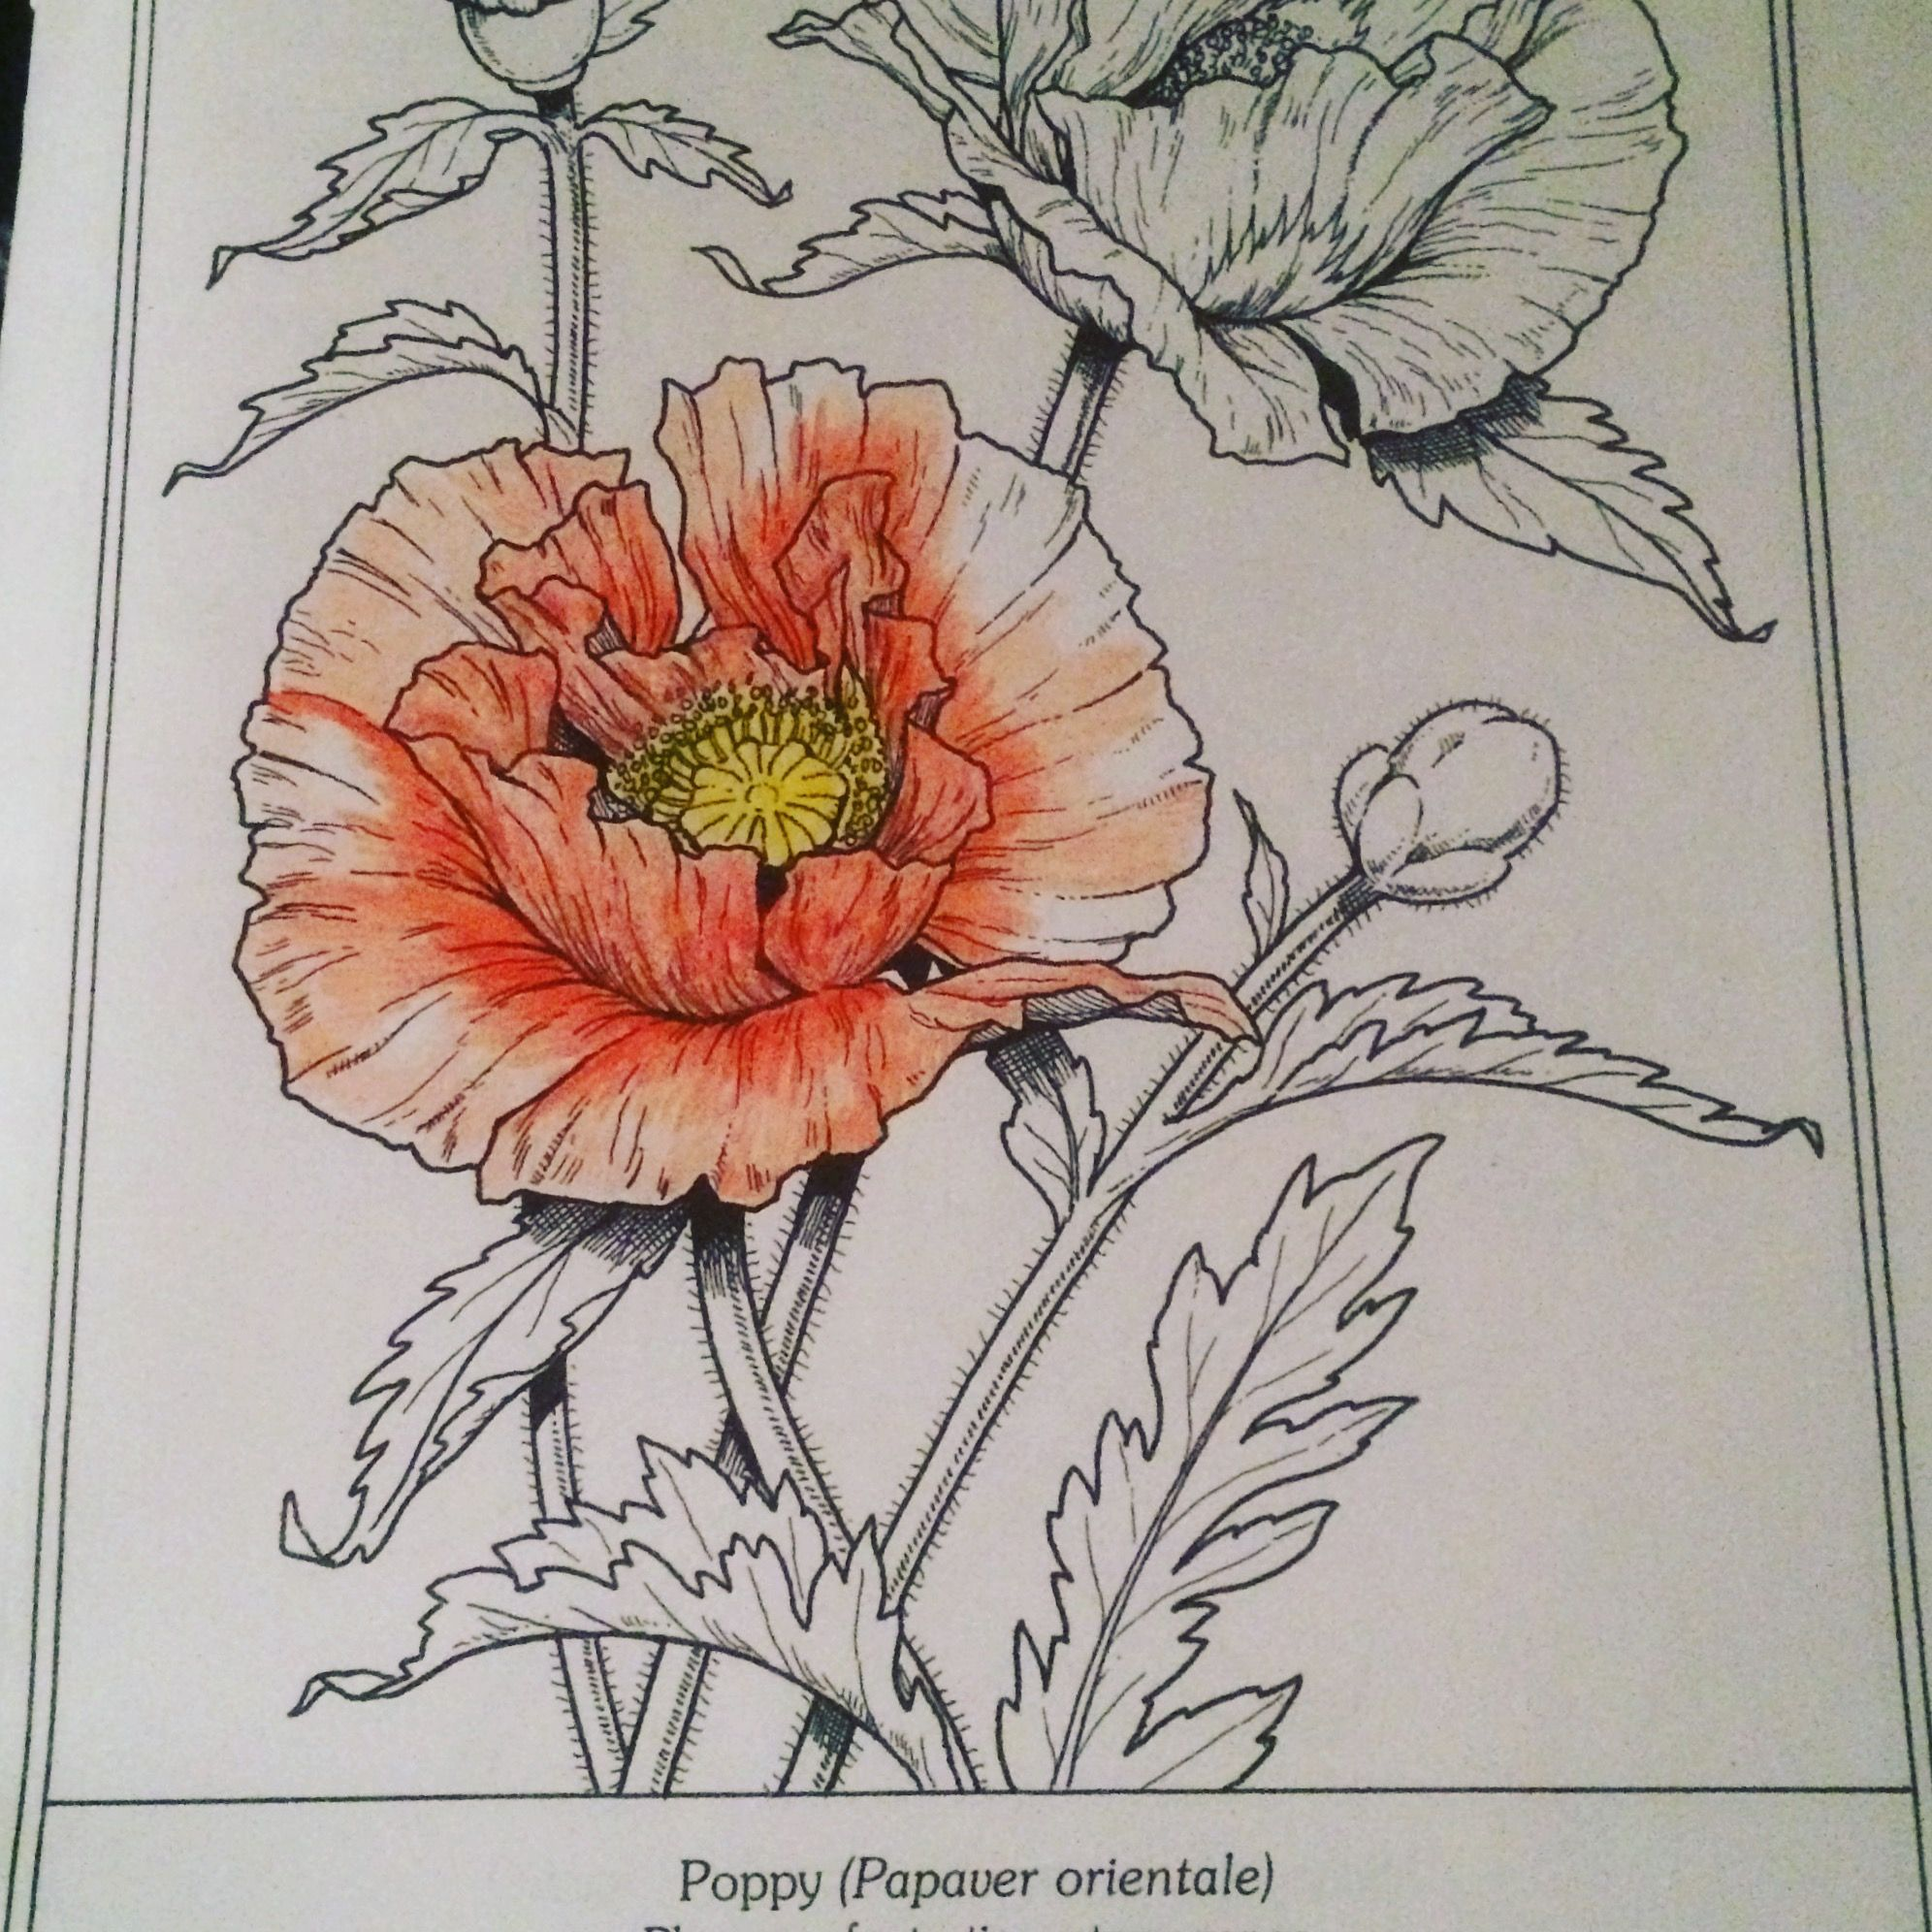 Pin by Alana Serbiá on bujo | Pinterest | Bujo, Adult coloring and ...